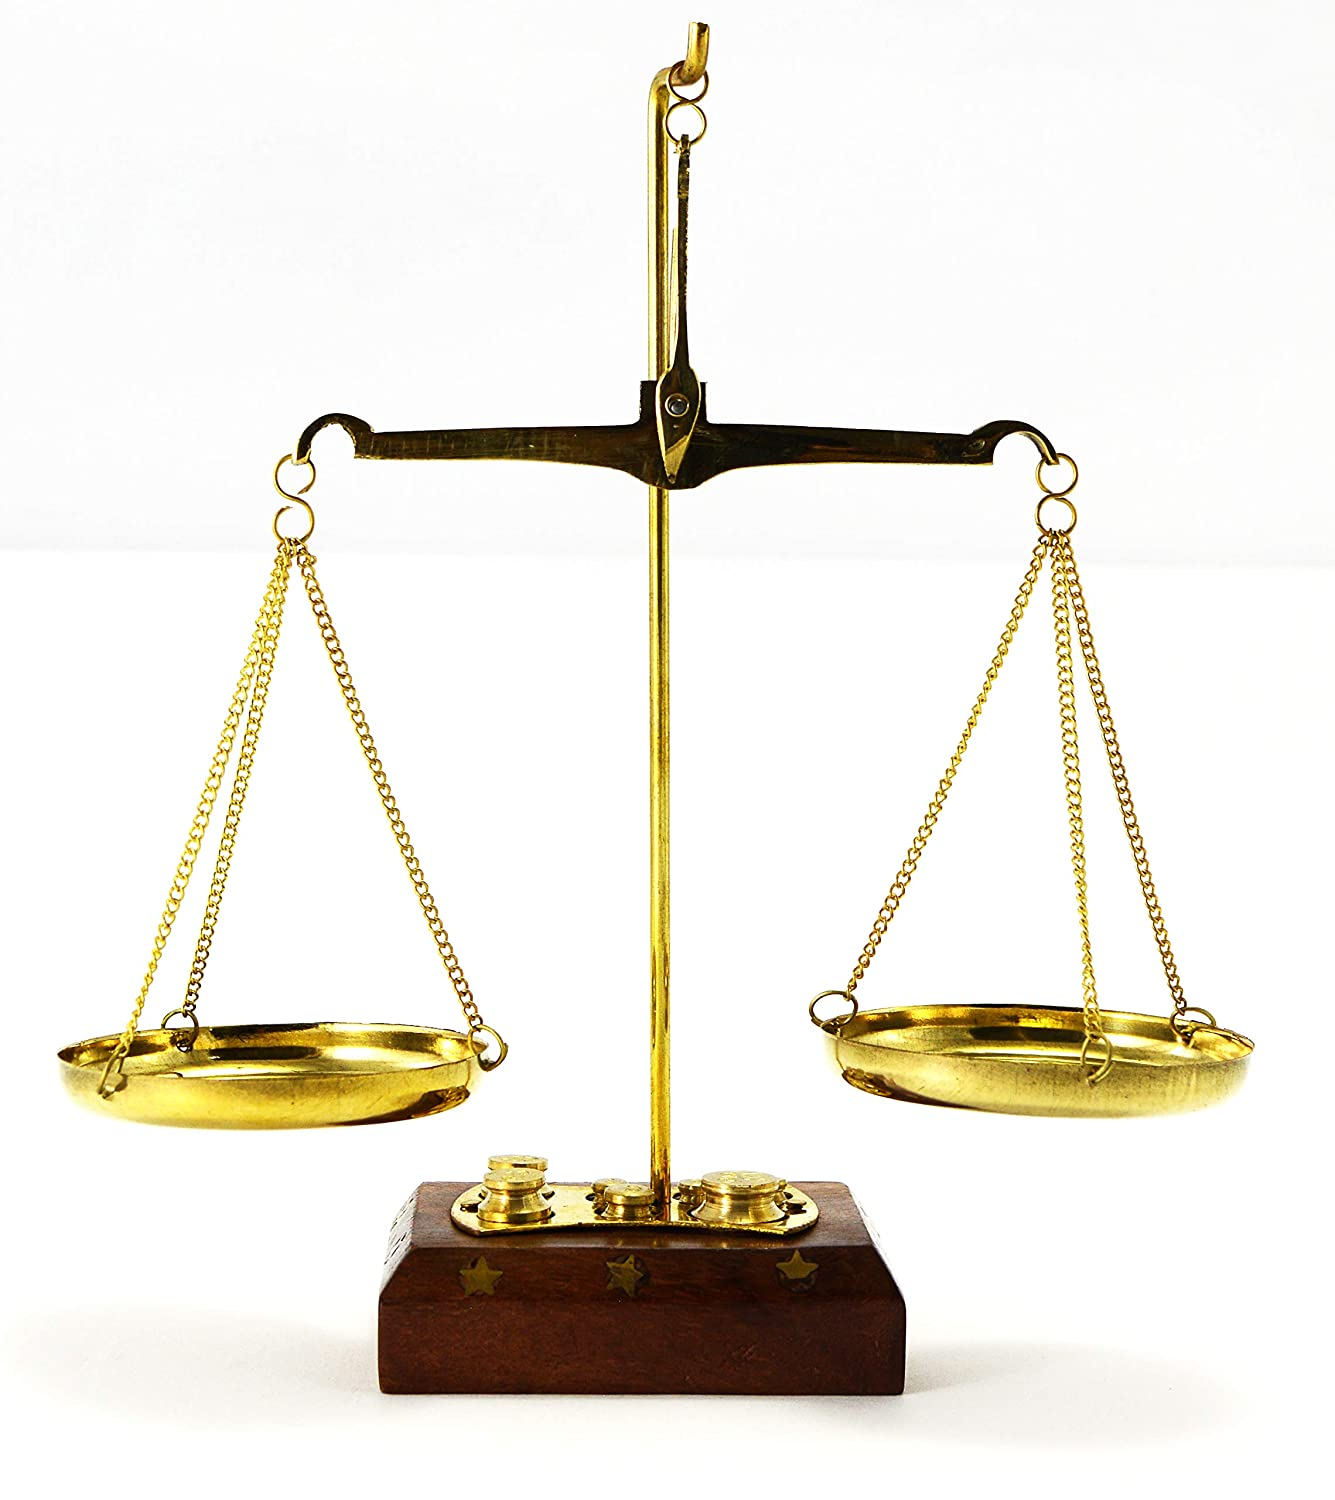 Old Traditional Weight (tarazu) showpiece Brass Weighing Scale Balance Justice Law Scale Classic Gift Collection